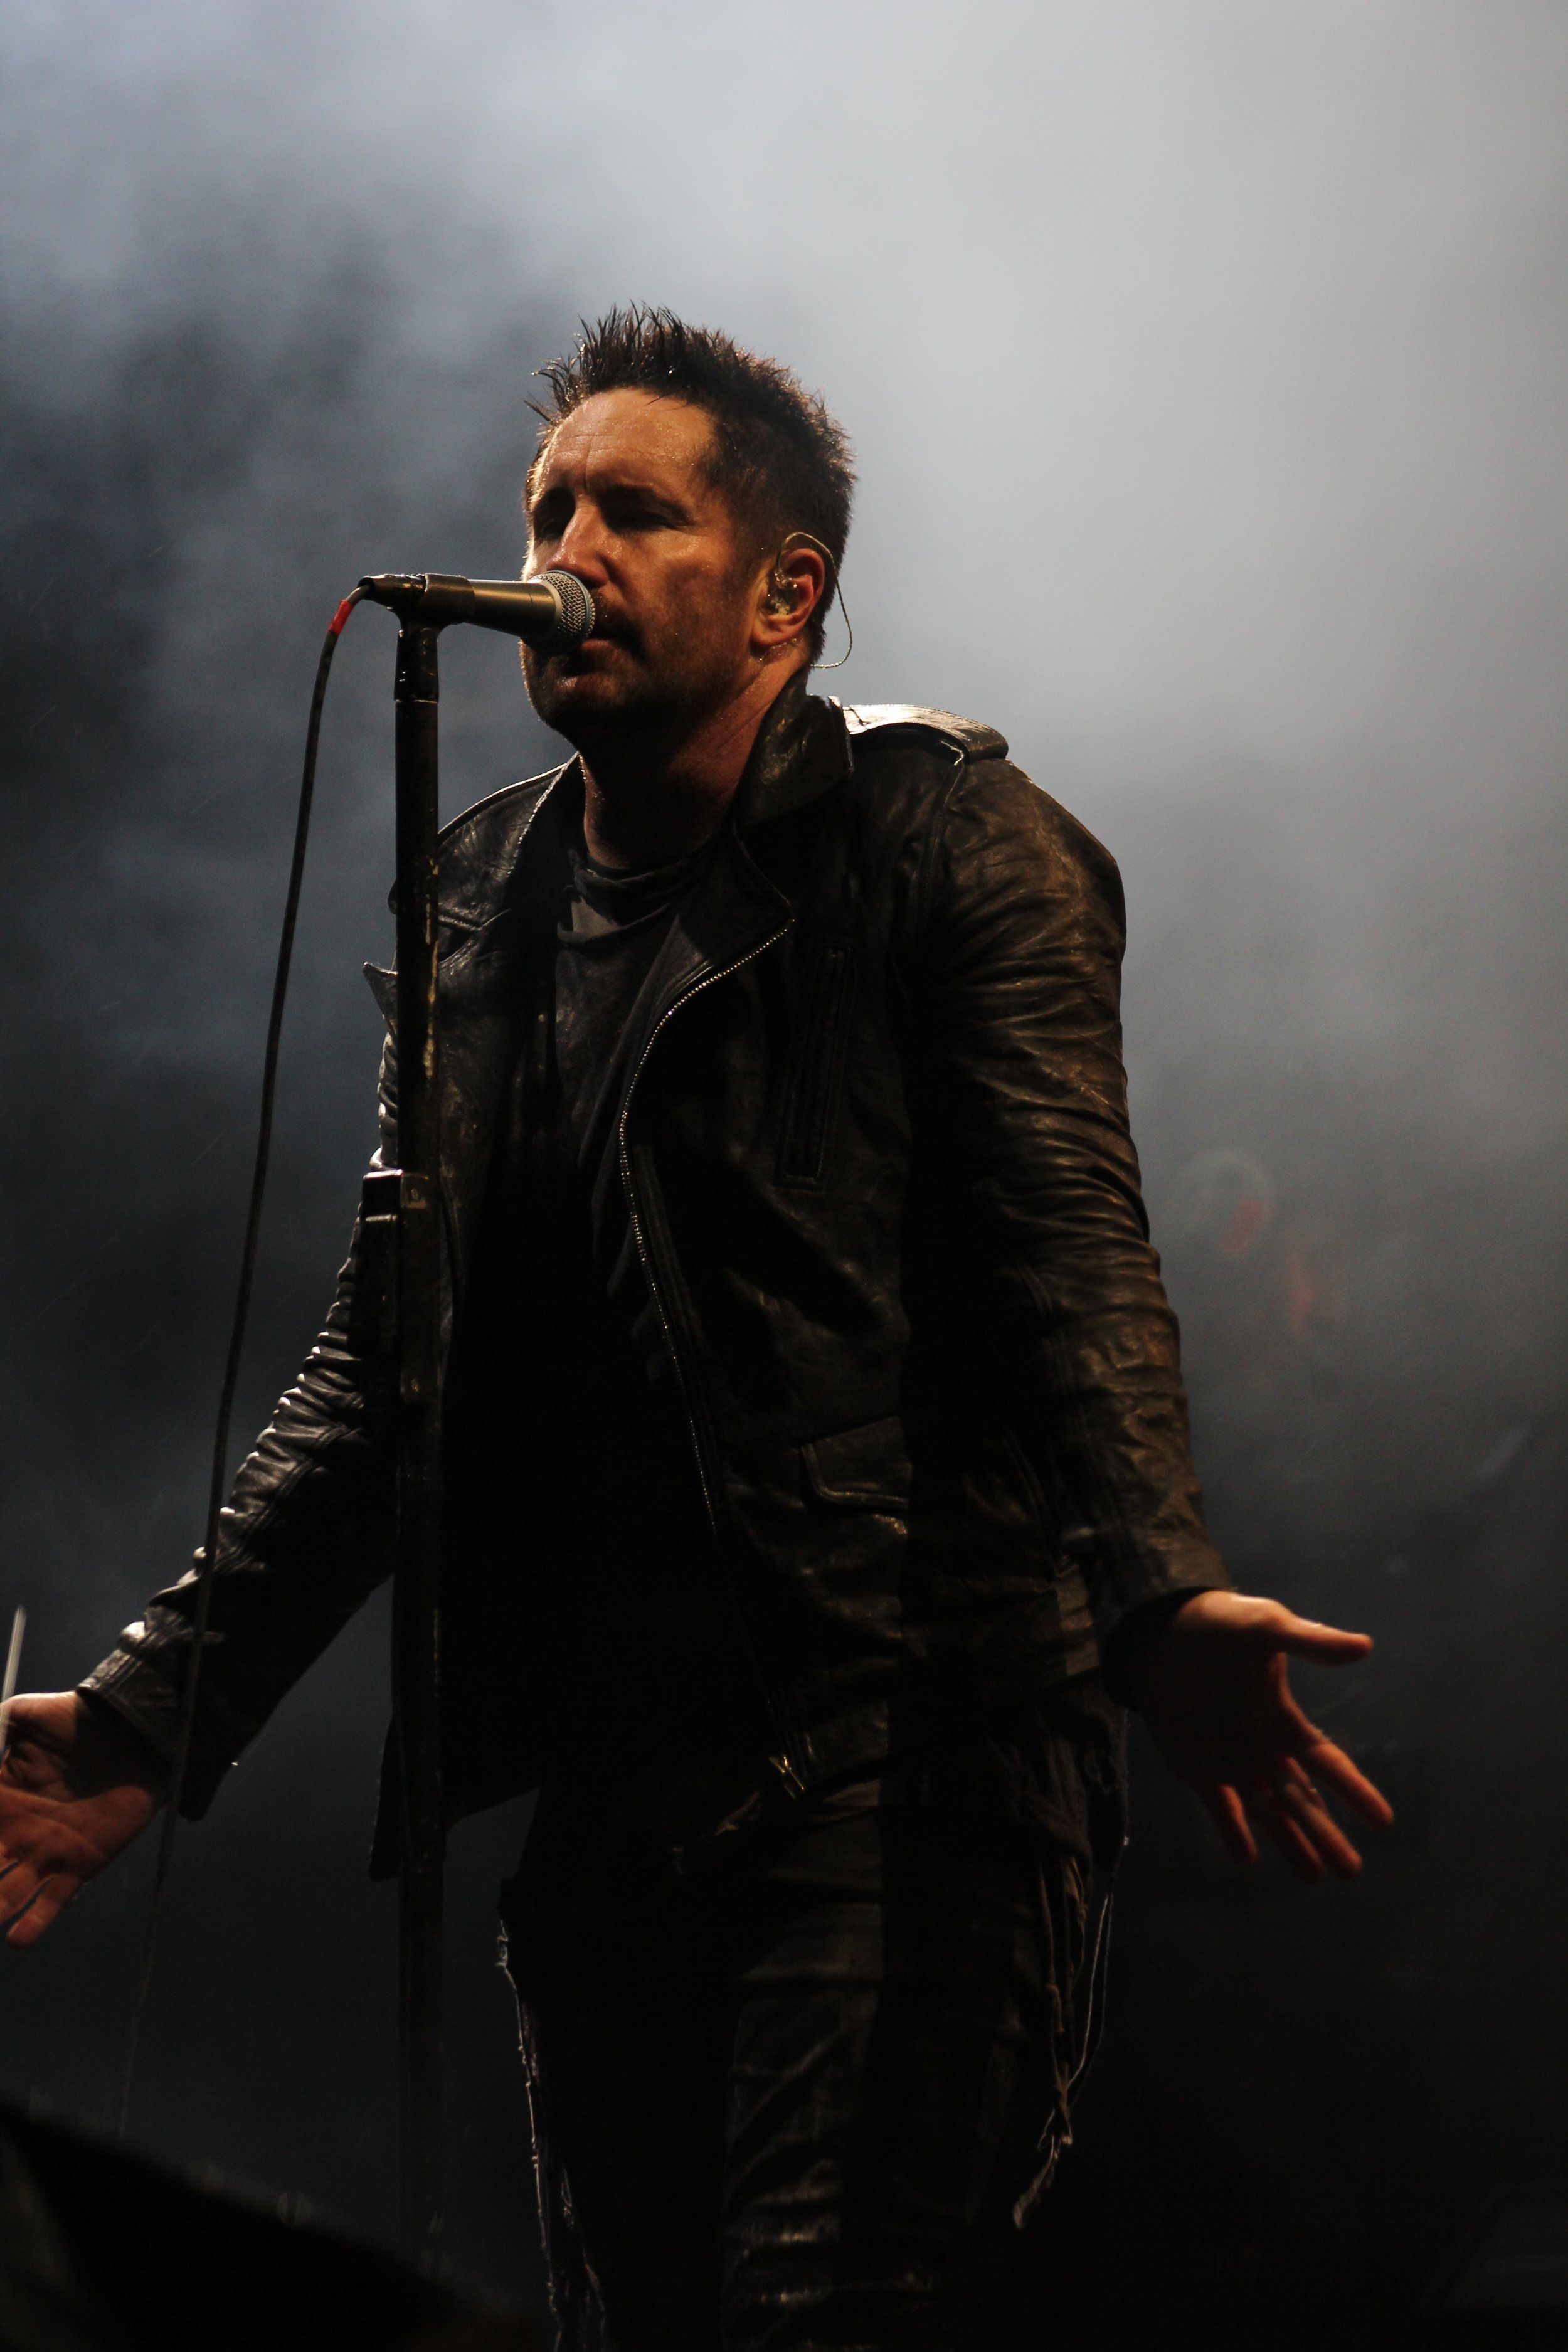 Trent Reznor / Nine Inch Nails at Day For Night Festival, Houston ...